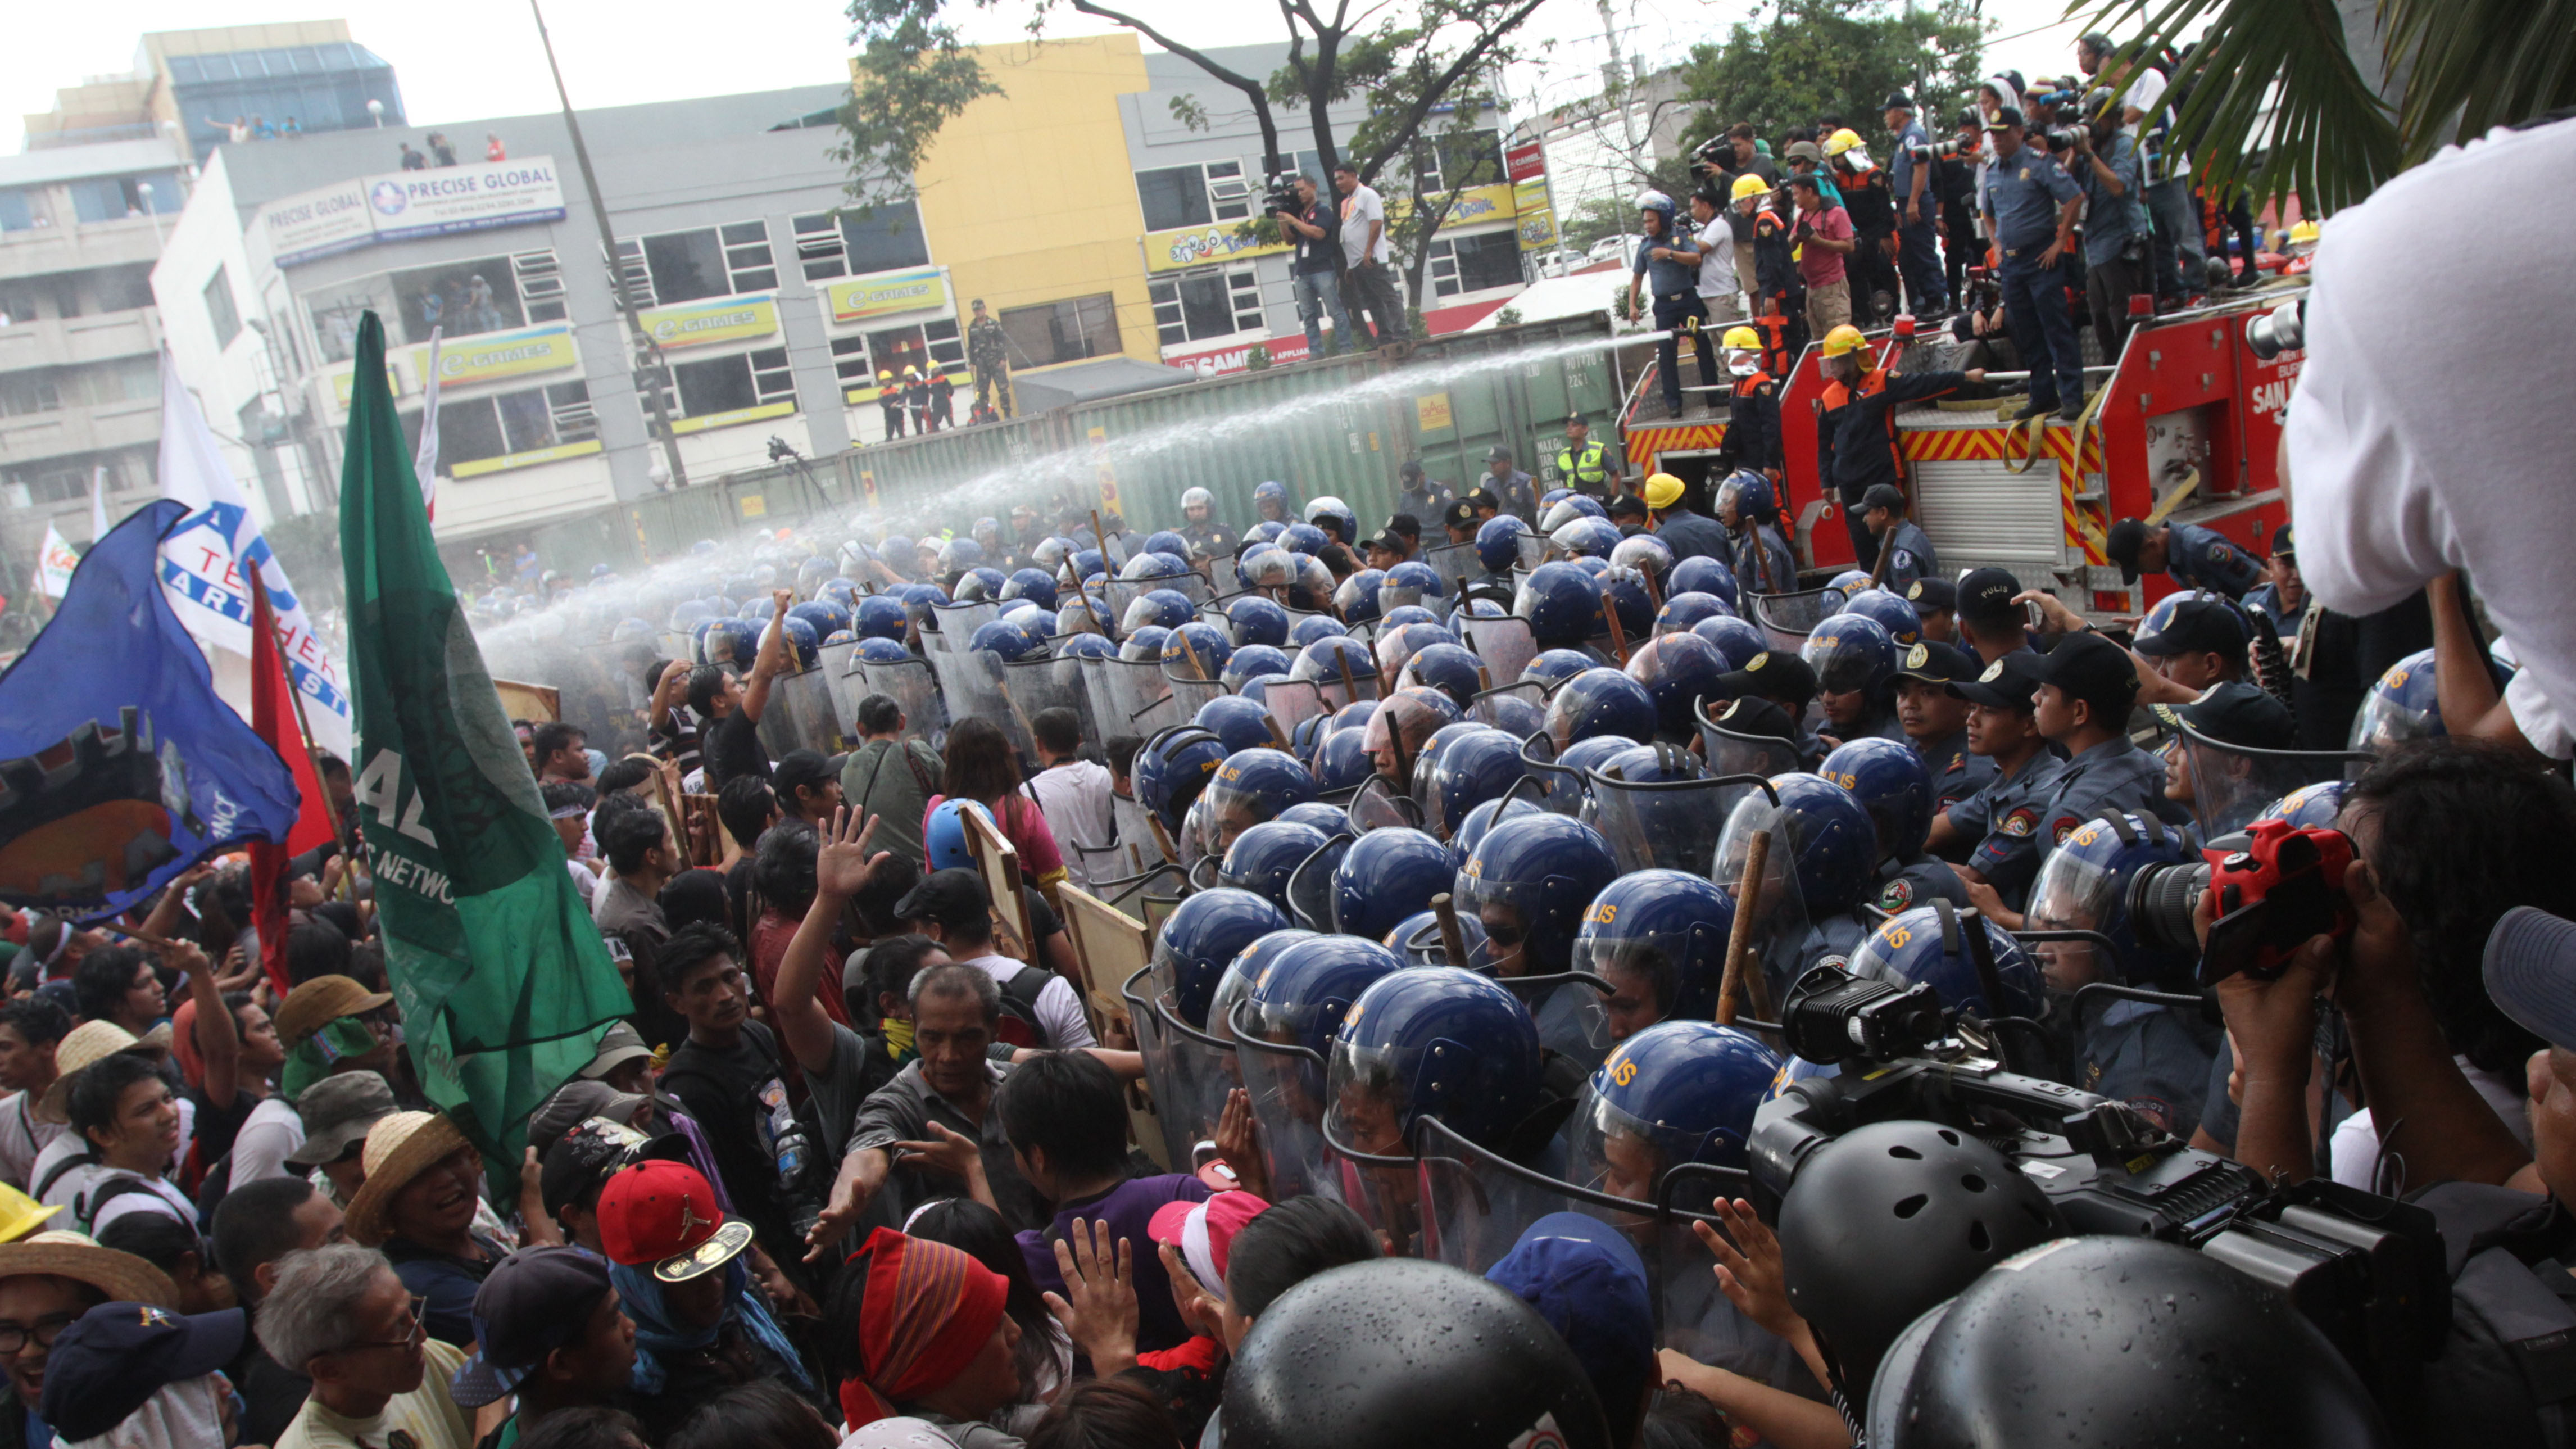 Police and protesters clash at the APEC leader meeting in Manila. (AAP)